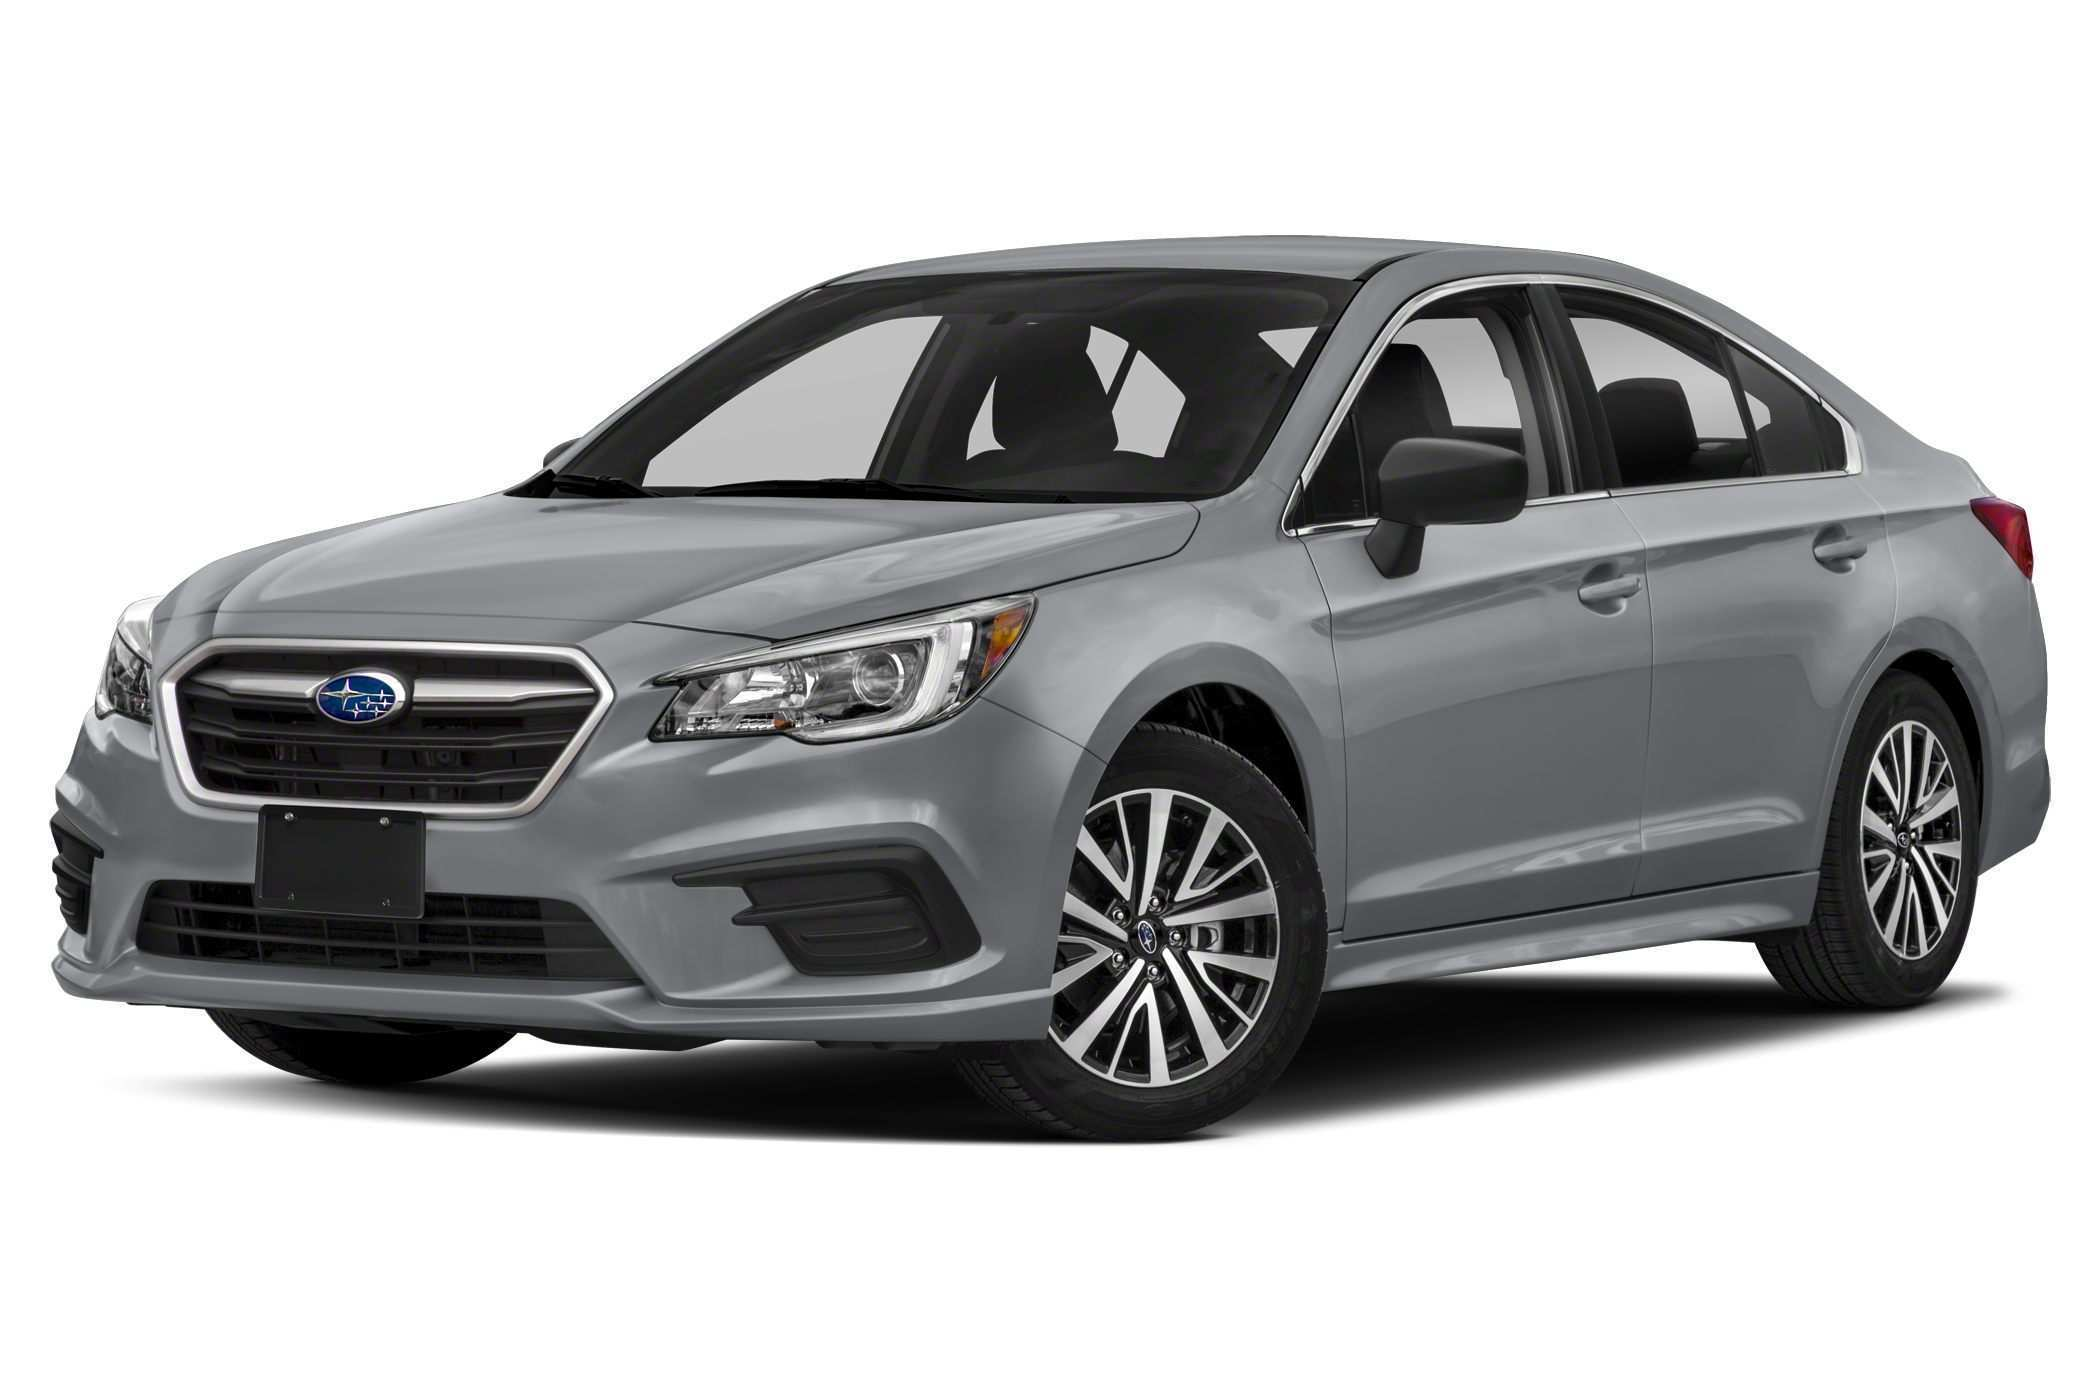 44 New 2019 Subaru Legacy Review Pictures by 2019 Subaru Legacy Review